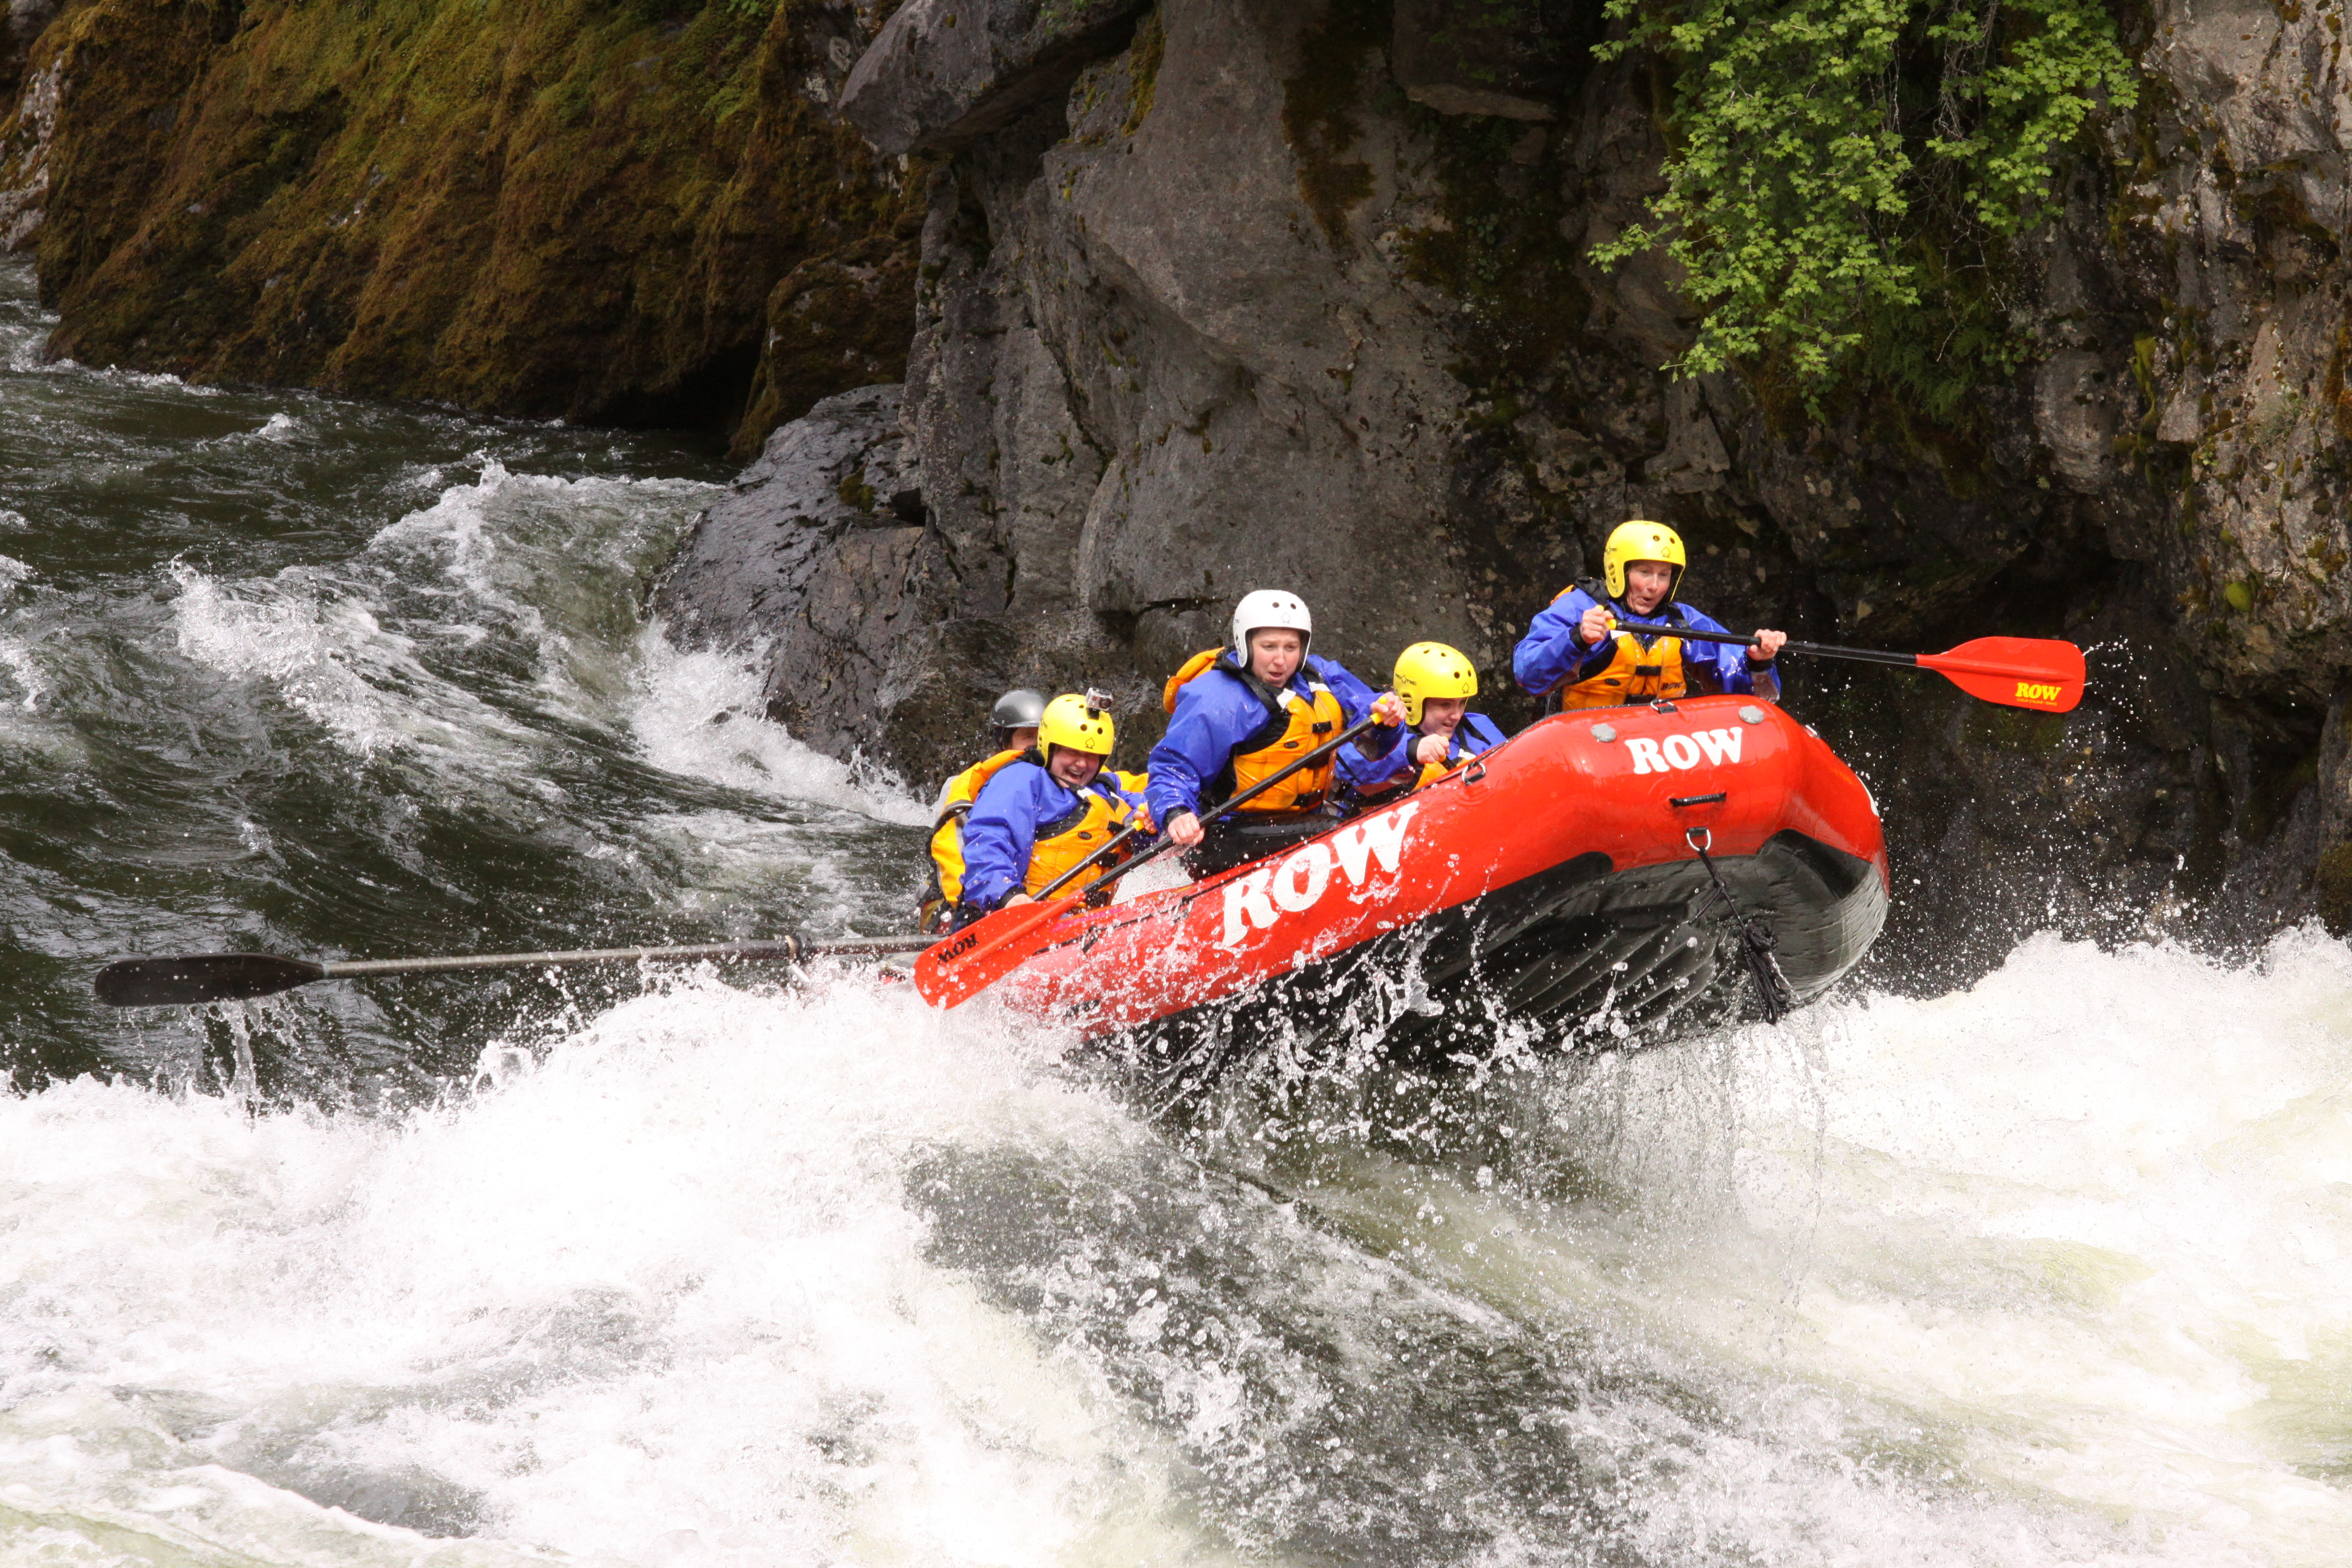 A ROW Adventures paddle crew pops through a rapids on the St. Joe River in North Idaho.